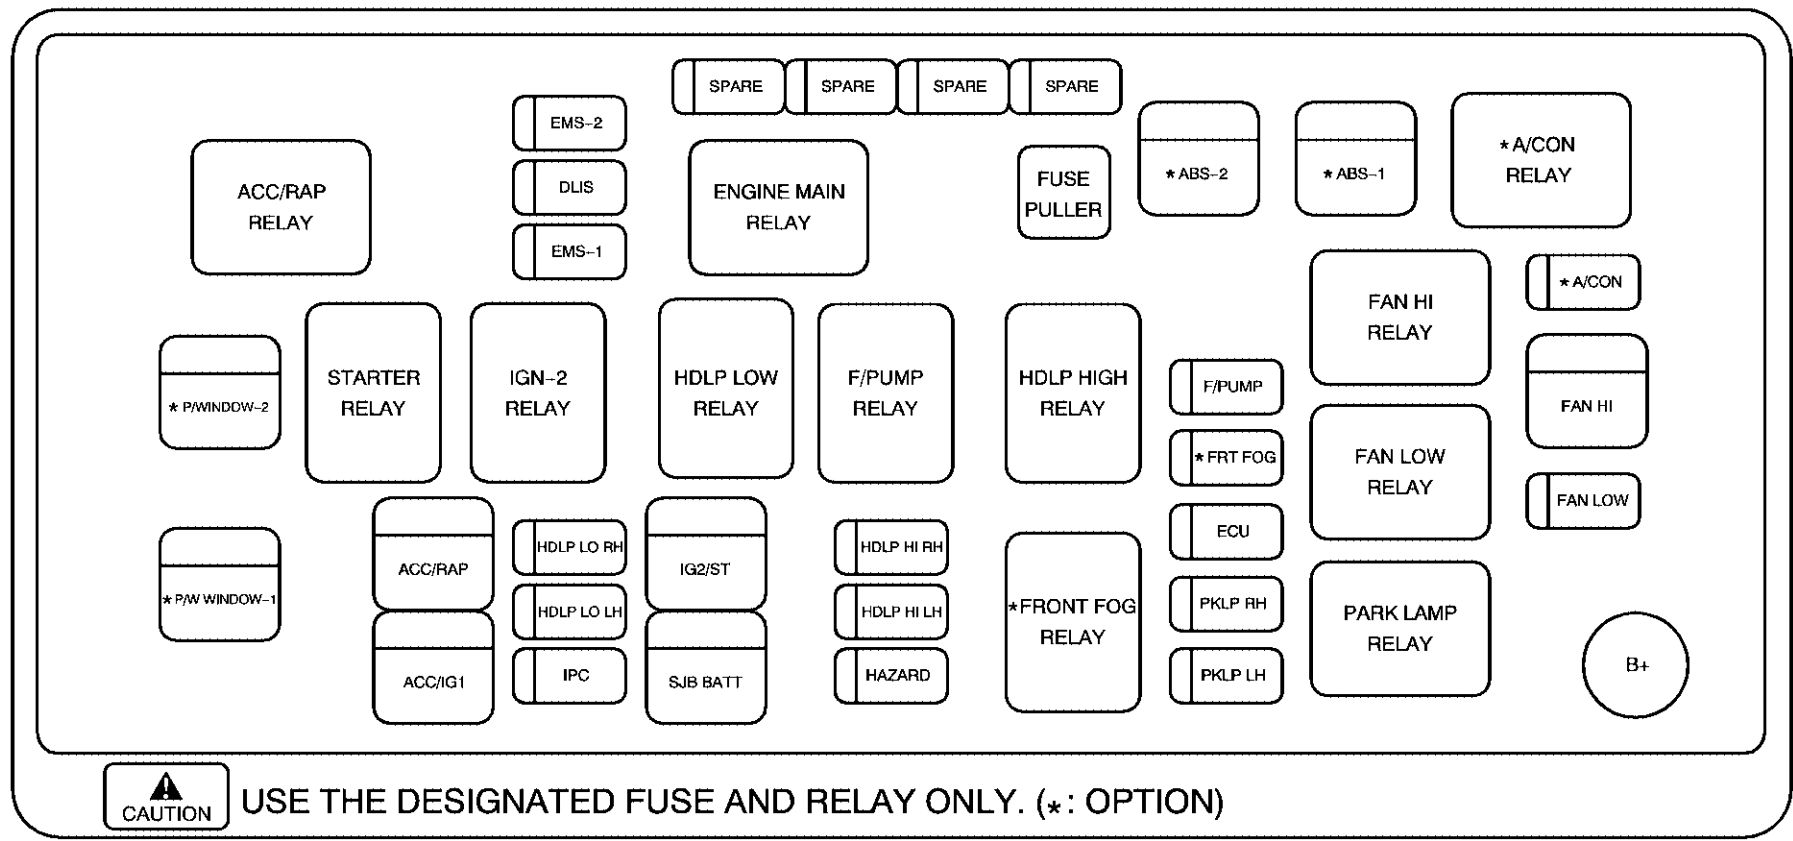 small resolution of 2004 chevy aveo fuse diagram wiring diagram centre 2004 chevy aveo fuse box location 2004 chevy aveo fuse diagram